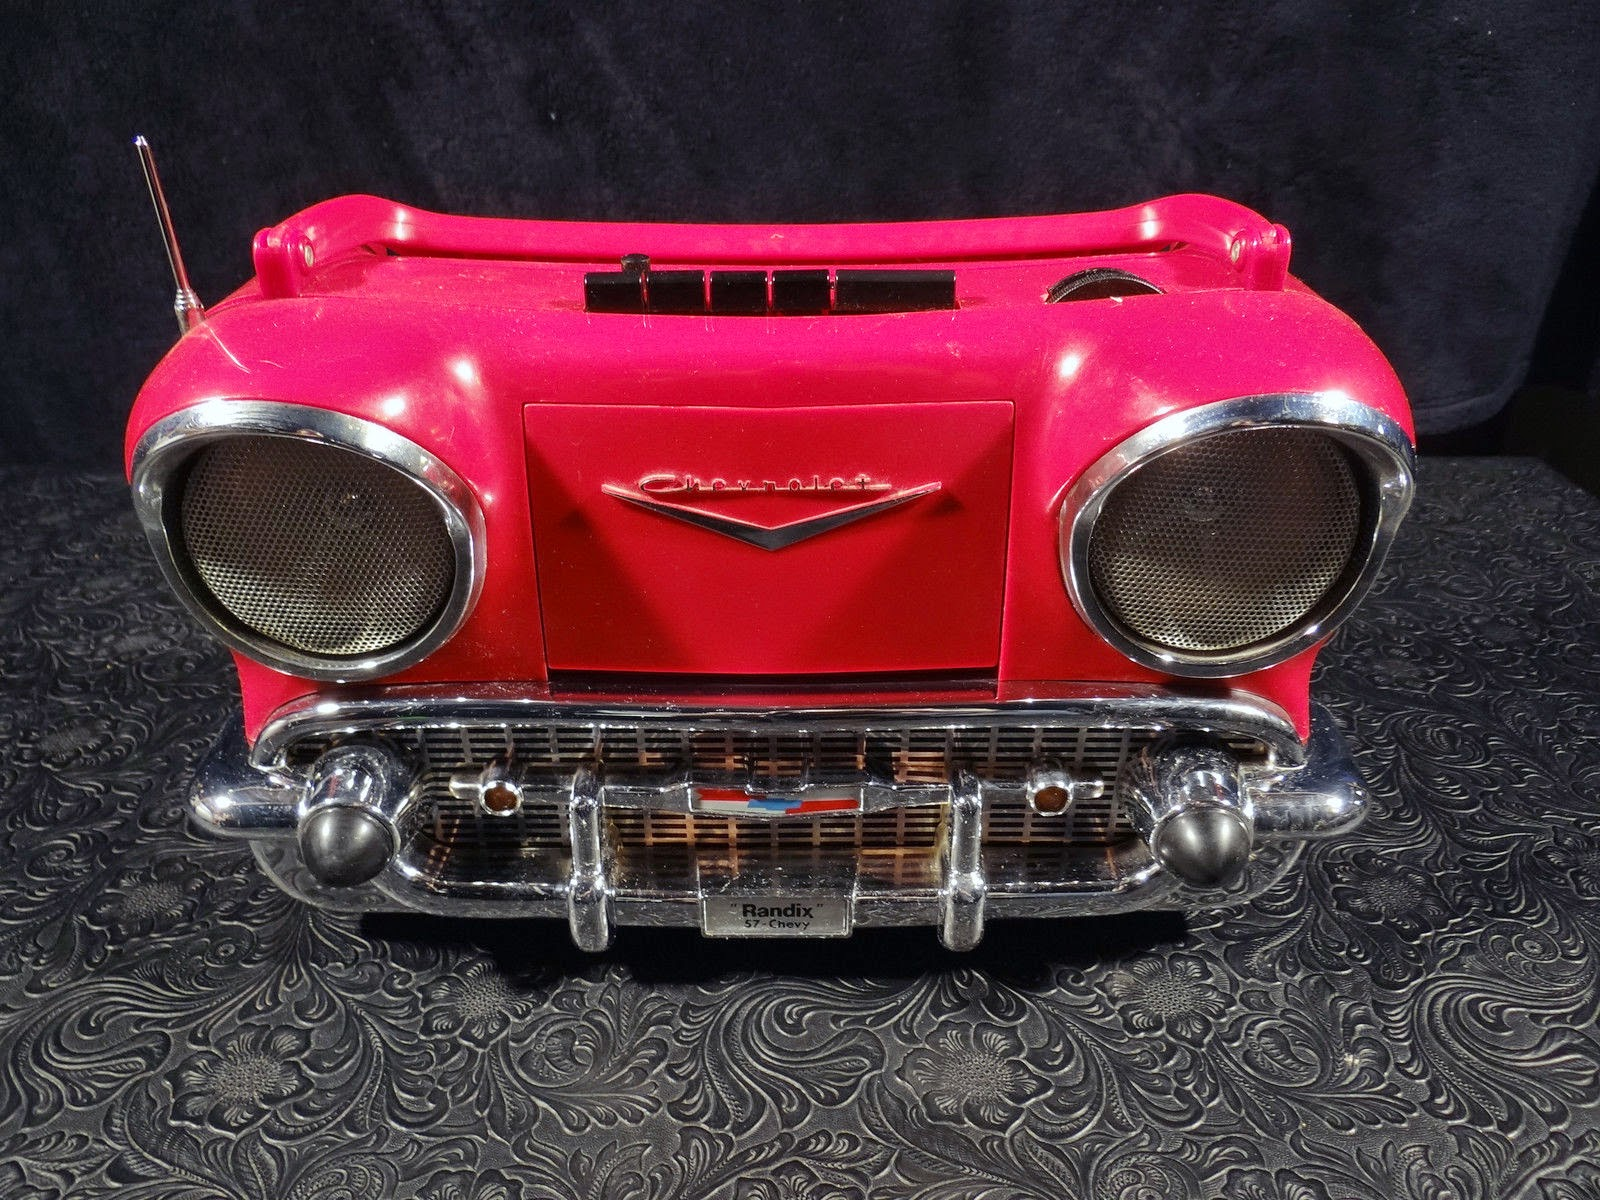 RANDIX RED '57 CHEVY AM/FM STEREO/RADIO CASSETTE PLAYER missing power supply